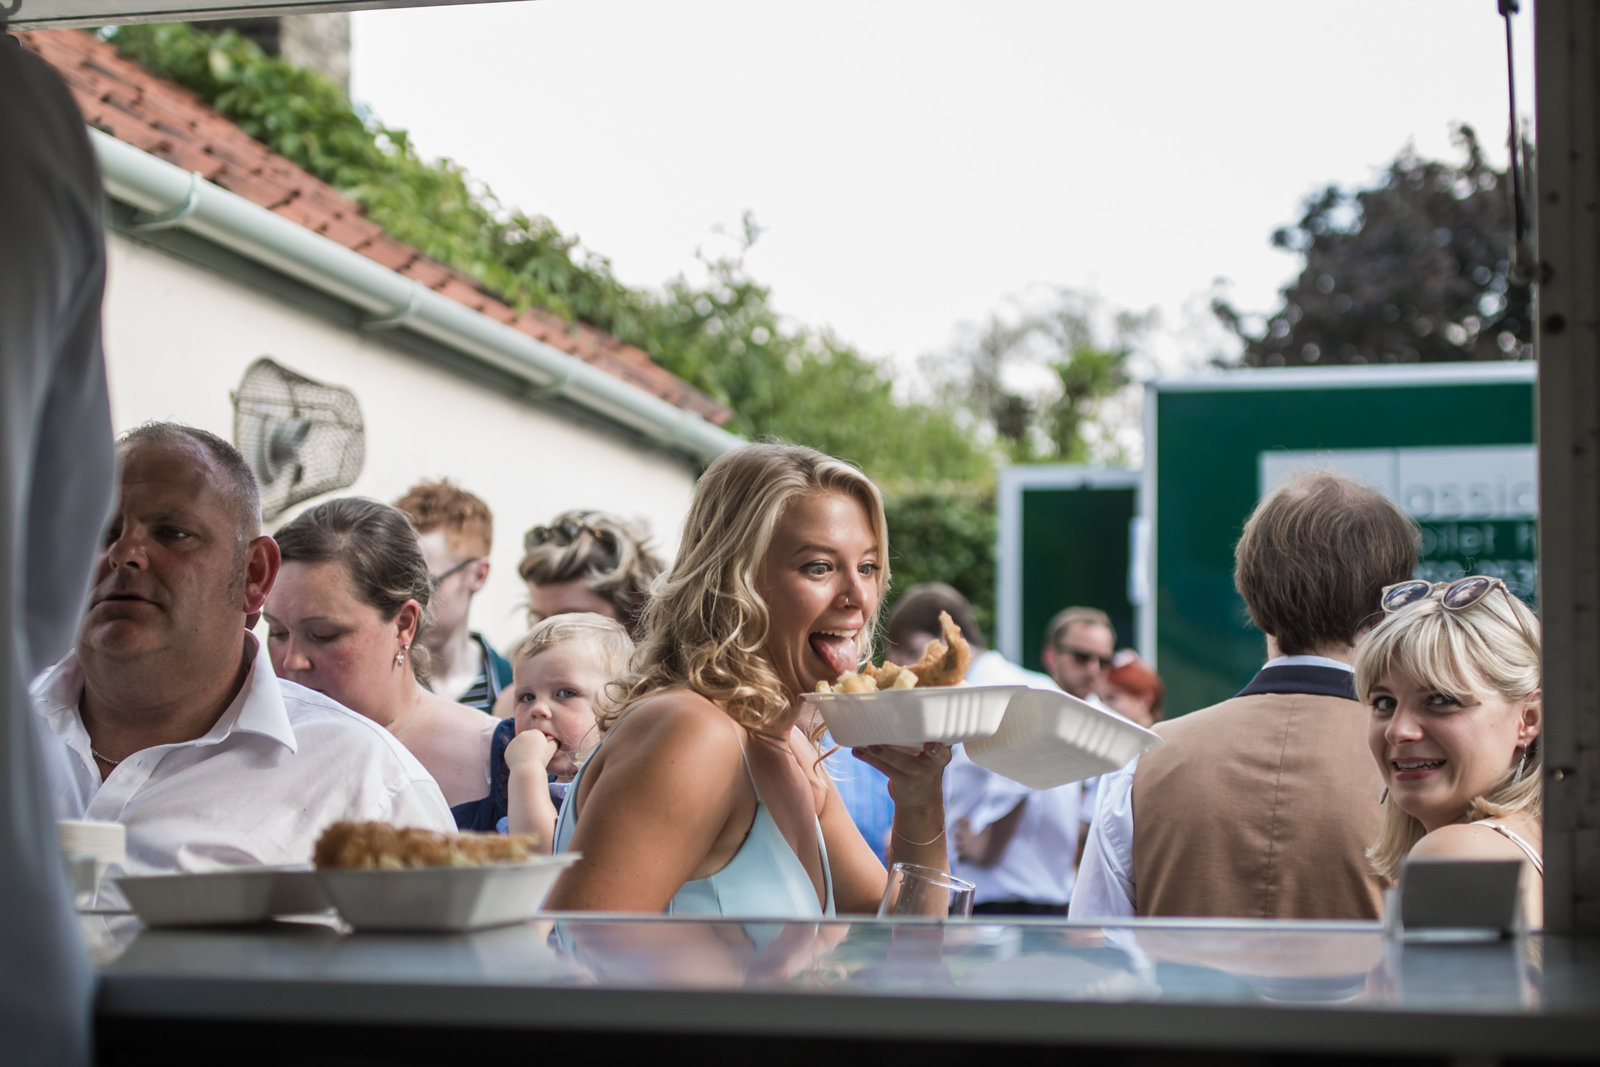 A wedding guest is holding fish and chips and is sticking her tongue out at them whilst other guests queue up for fish and chips also at  a wedding in Norfolk.